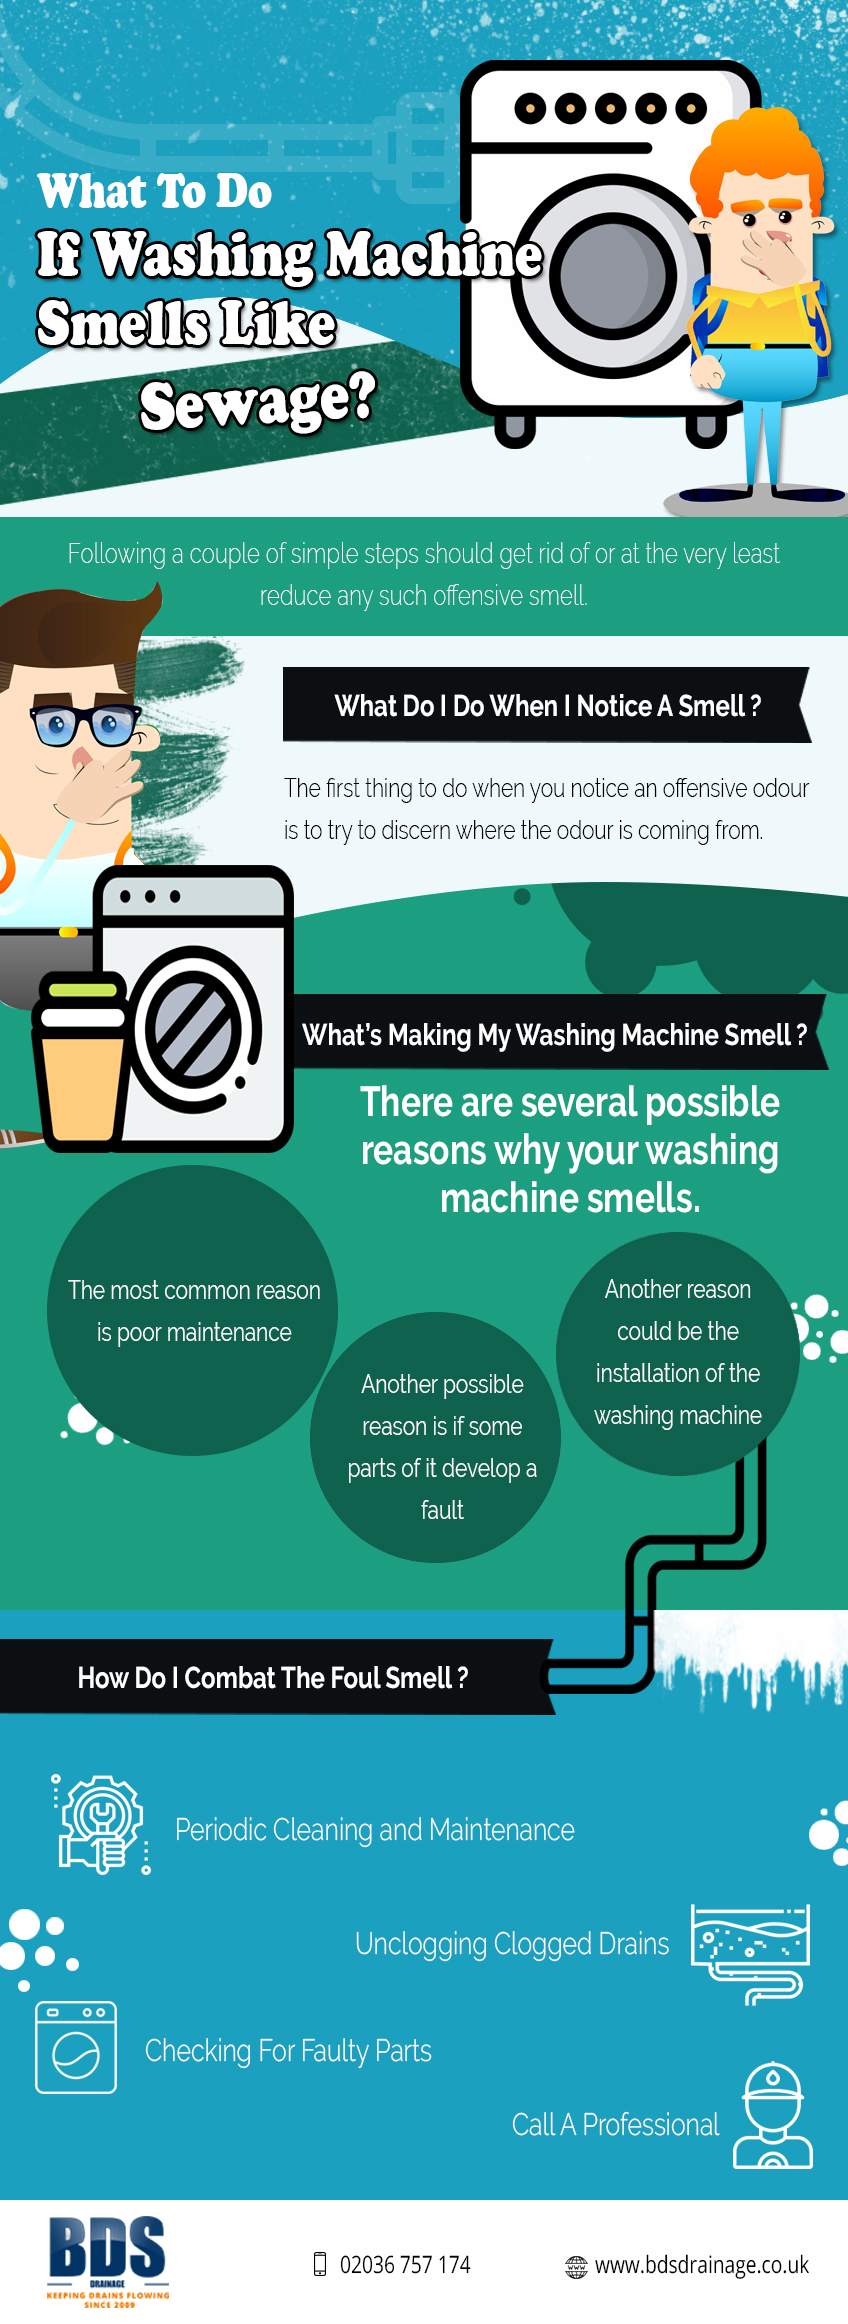 Ways to Eliminate Sewage Smell in Washing Machine